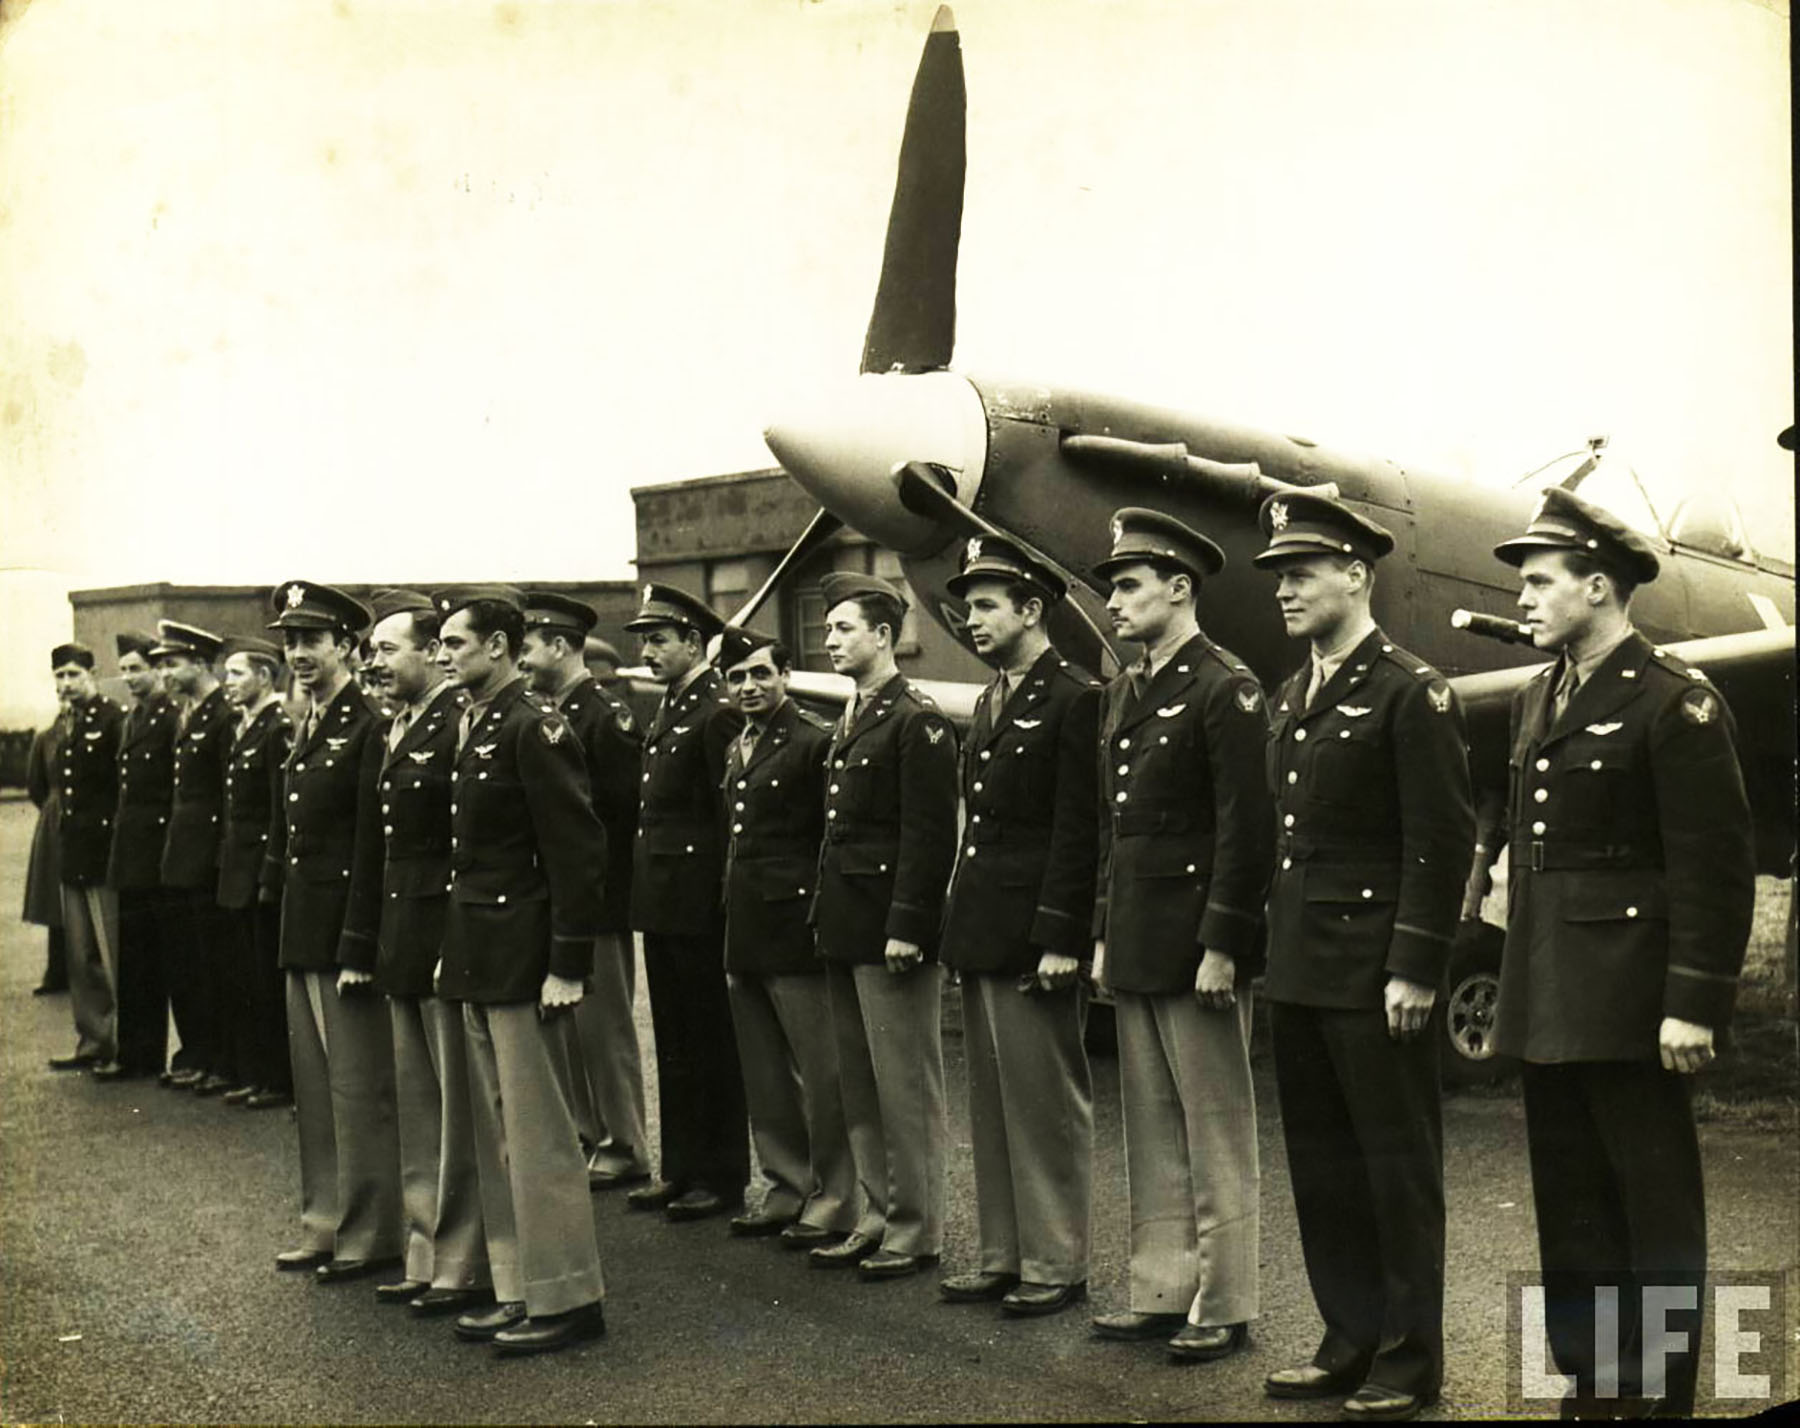 Aircrew USAAF pilots 4th Fighter Group time life photo 01